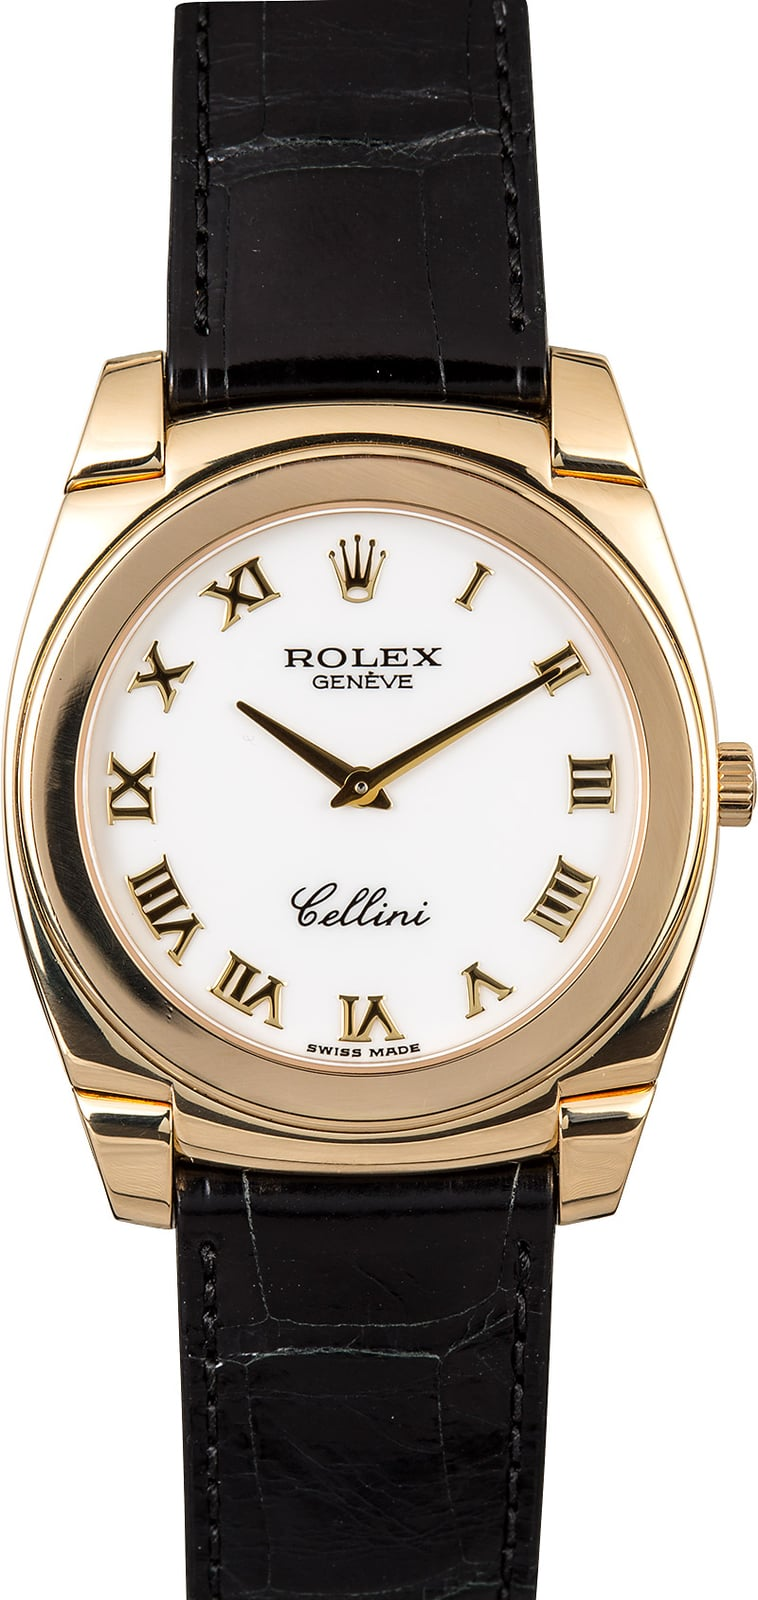 Rolex cellini cestello 5330 roman for Rolex cellini